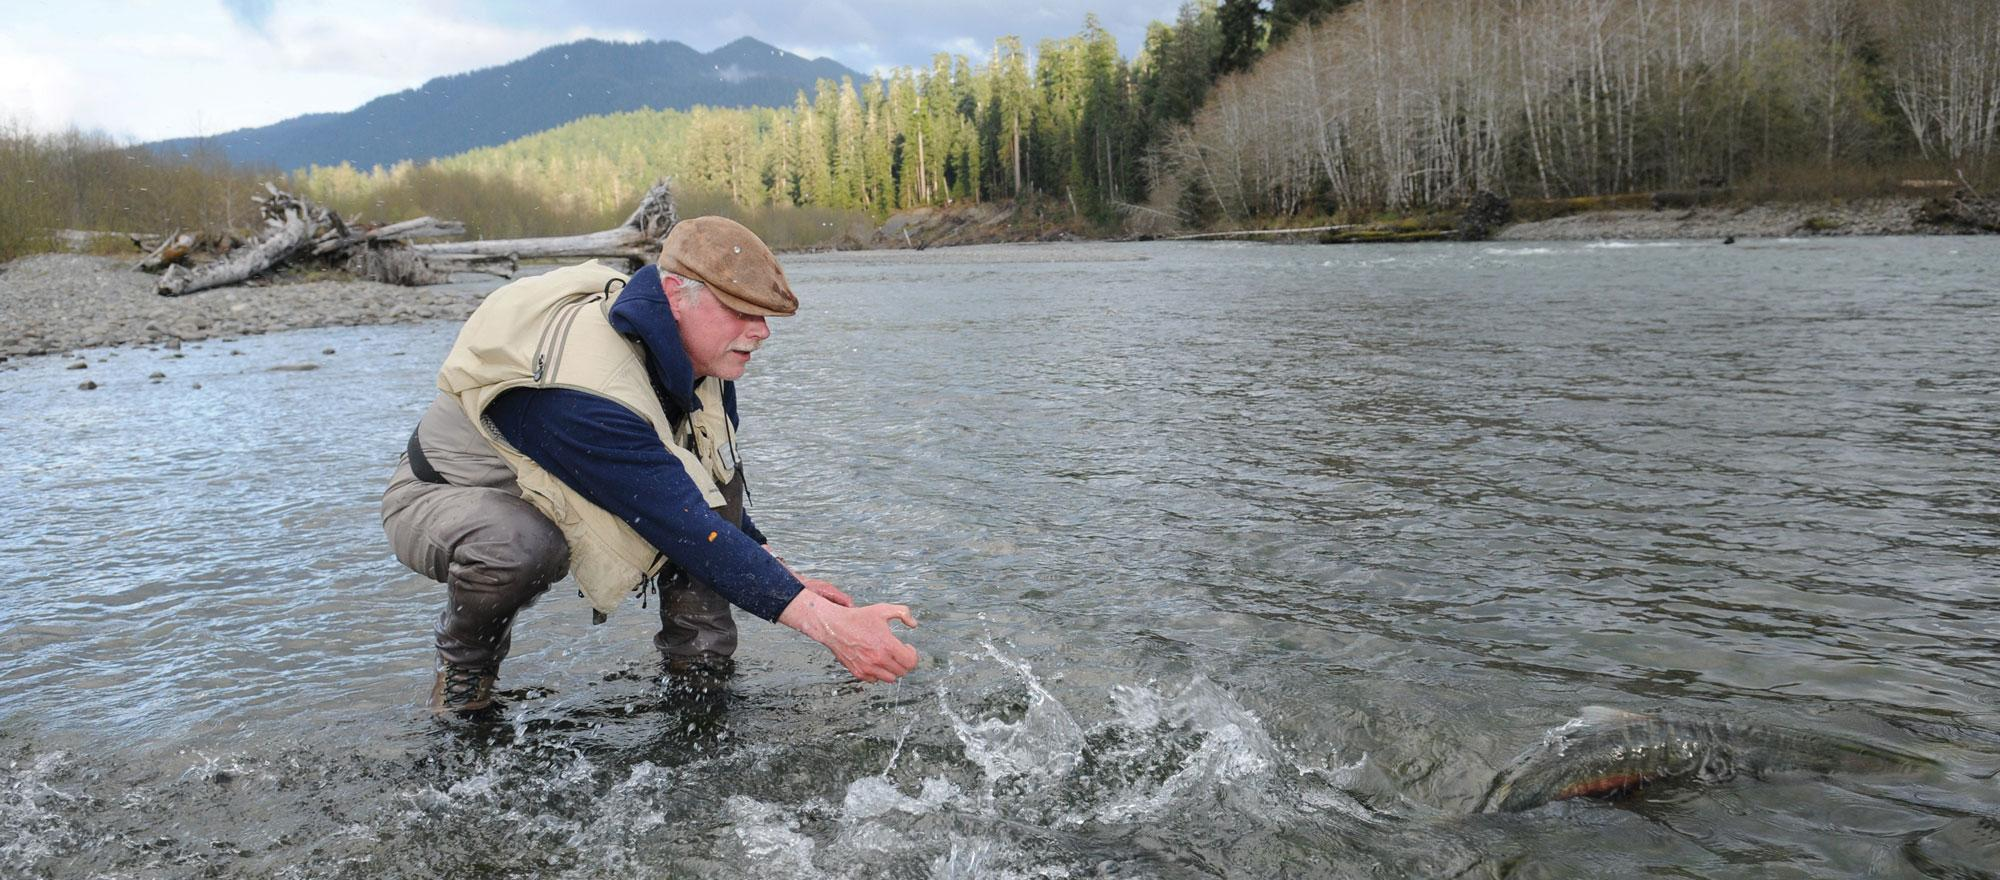 Veteran steelhead fisherman Sean Gallagher releases a native steelhead so it can spawn. (Photo: Gregory Smith Design)